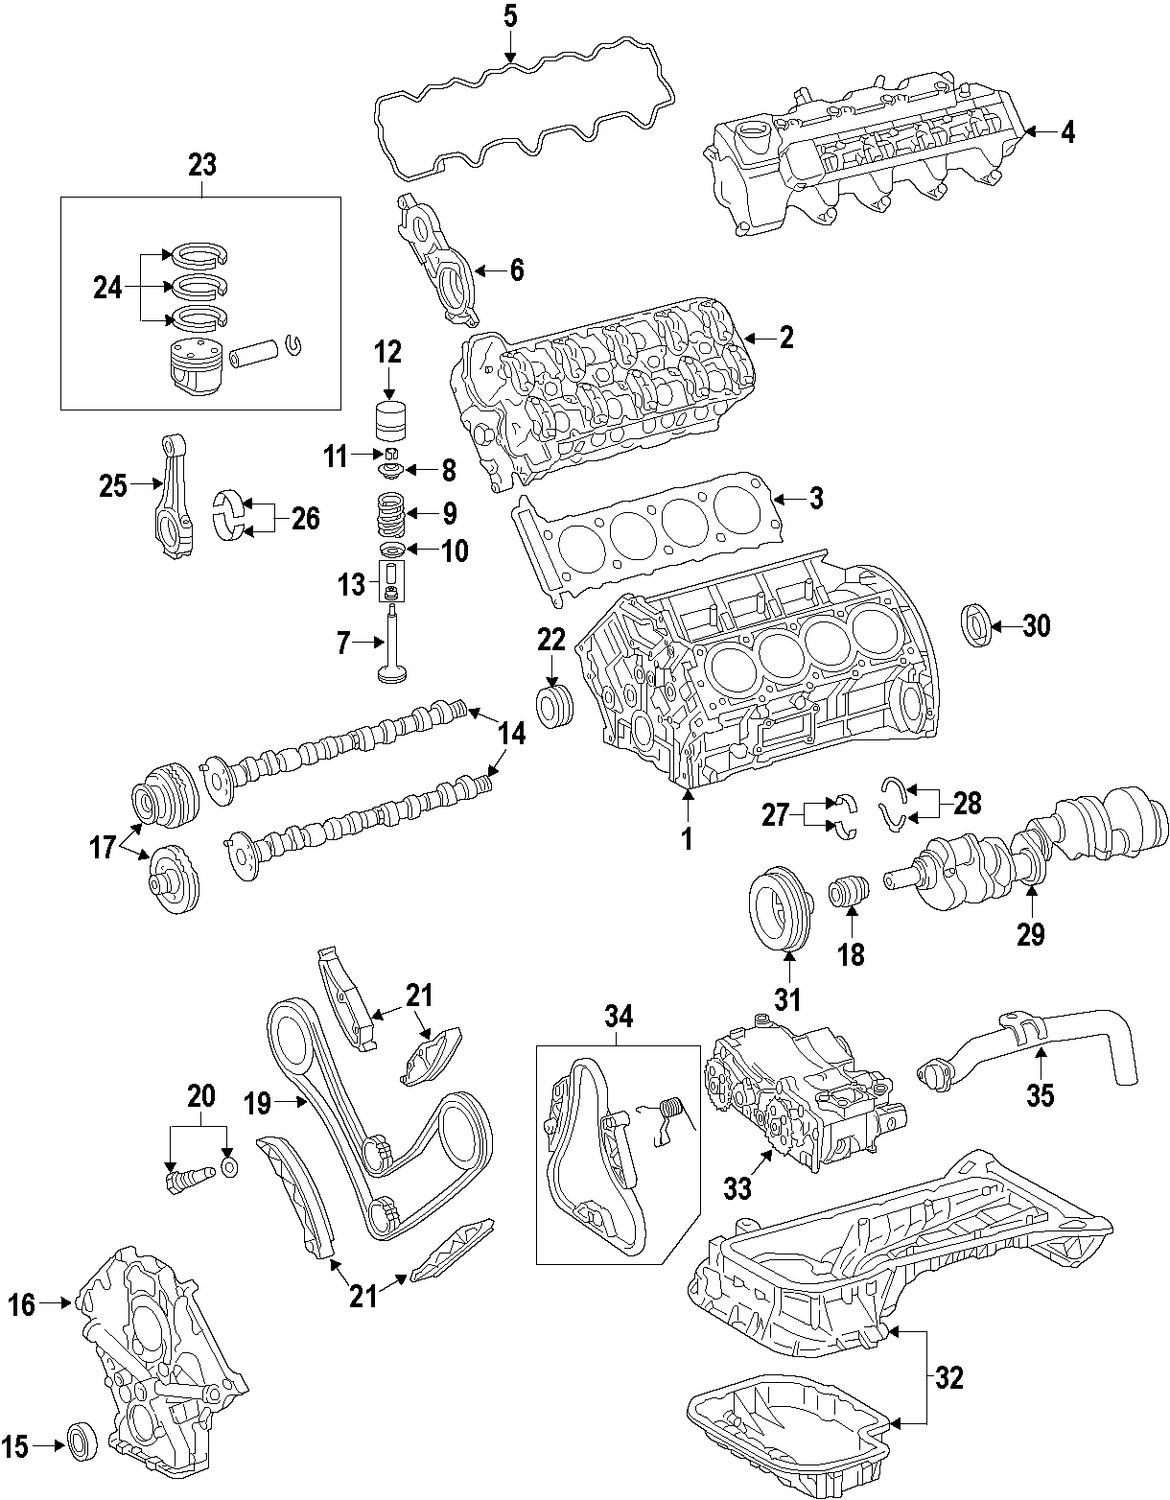 2002 ford windstar exhaust parts diagram  u2022 wiring diagram